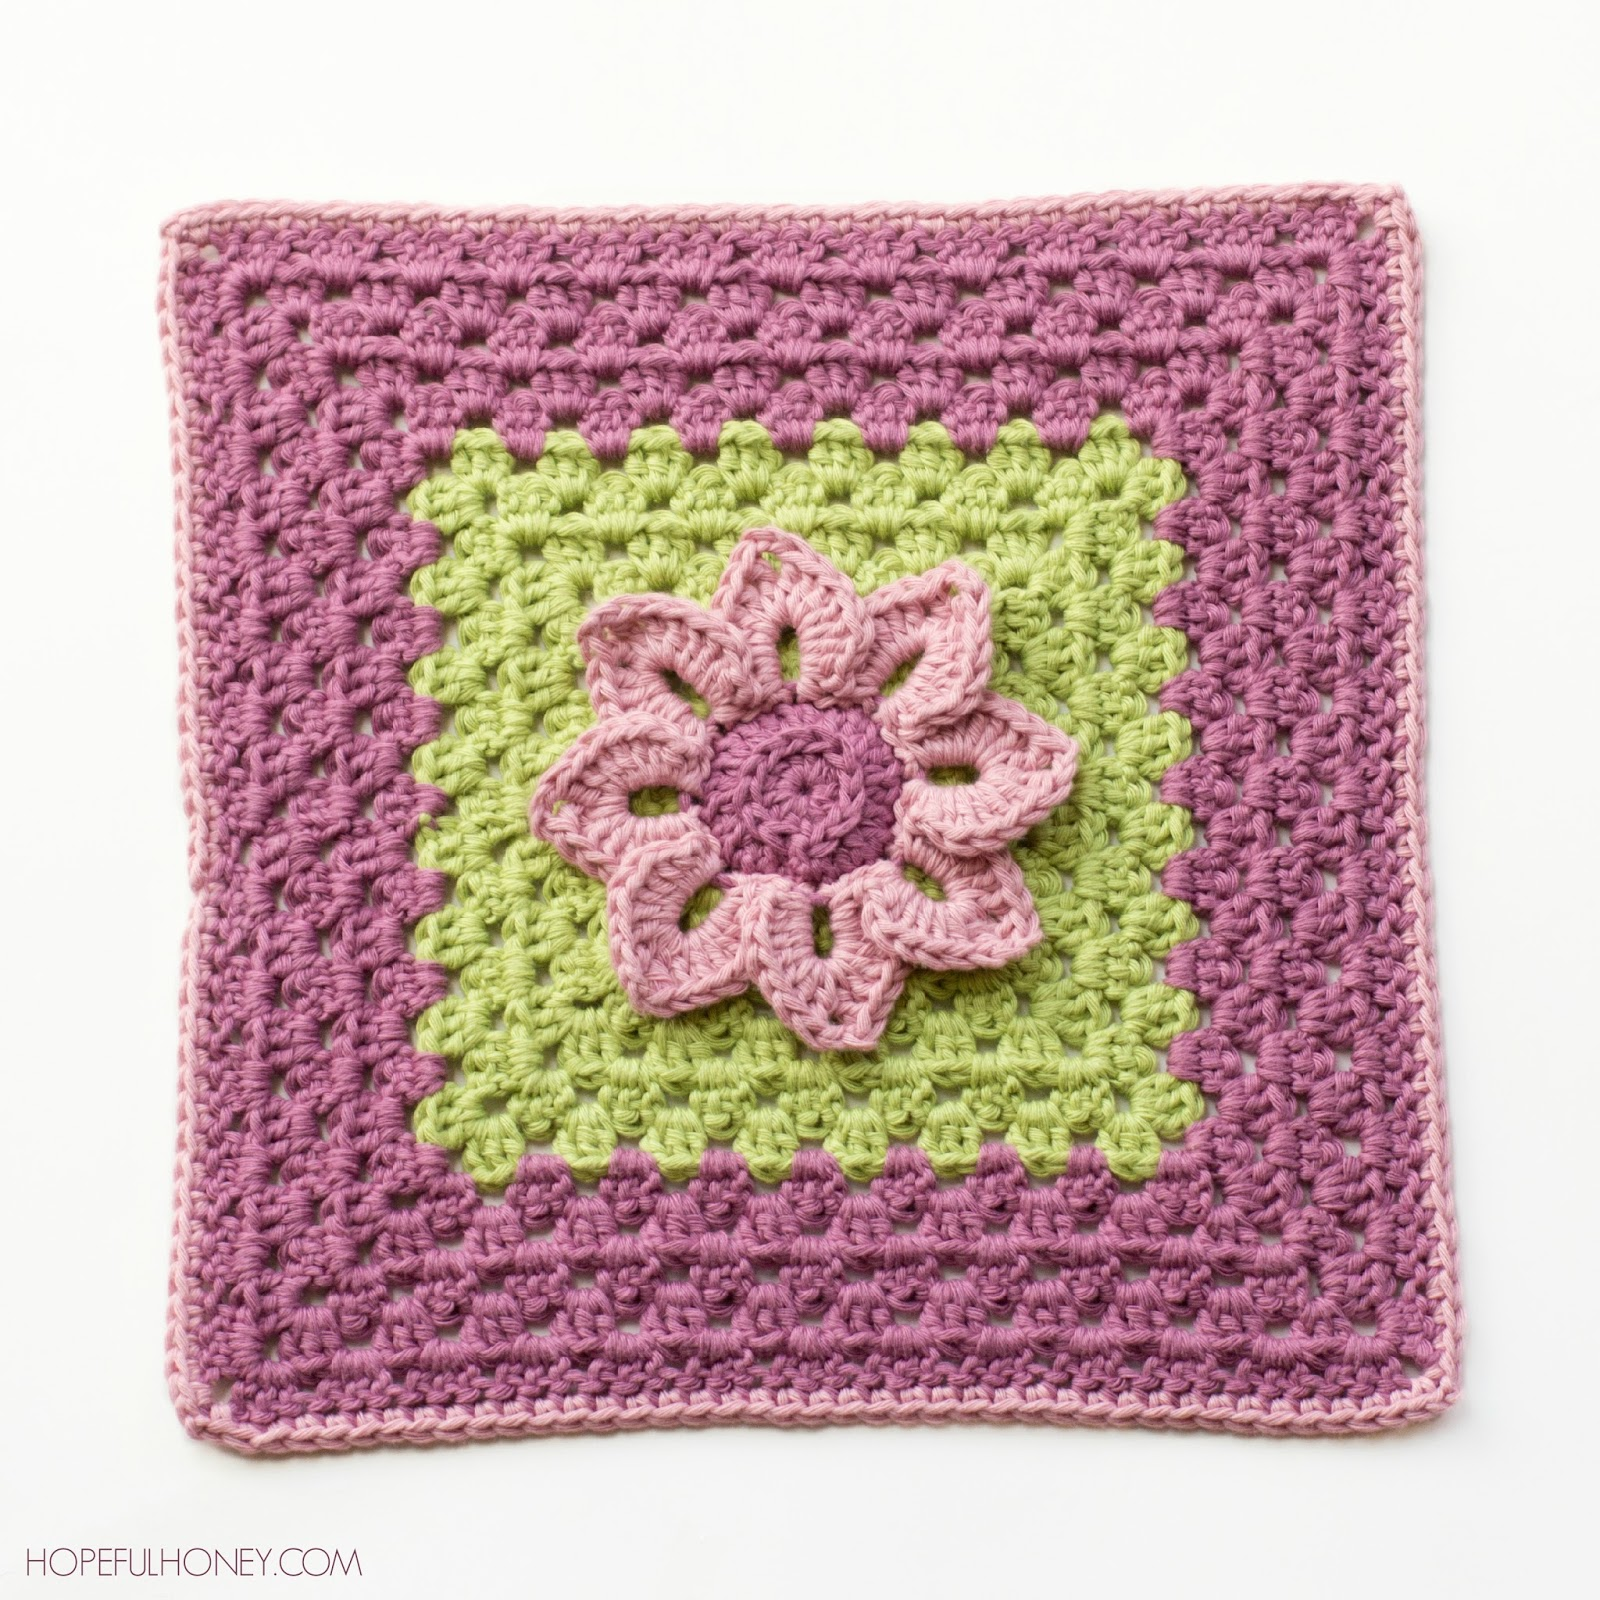 Crochet Patterns Squares : Water Lily Afghan Square - Media - Crochet Me